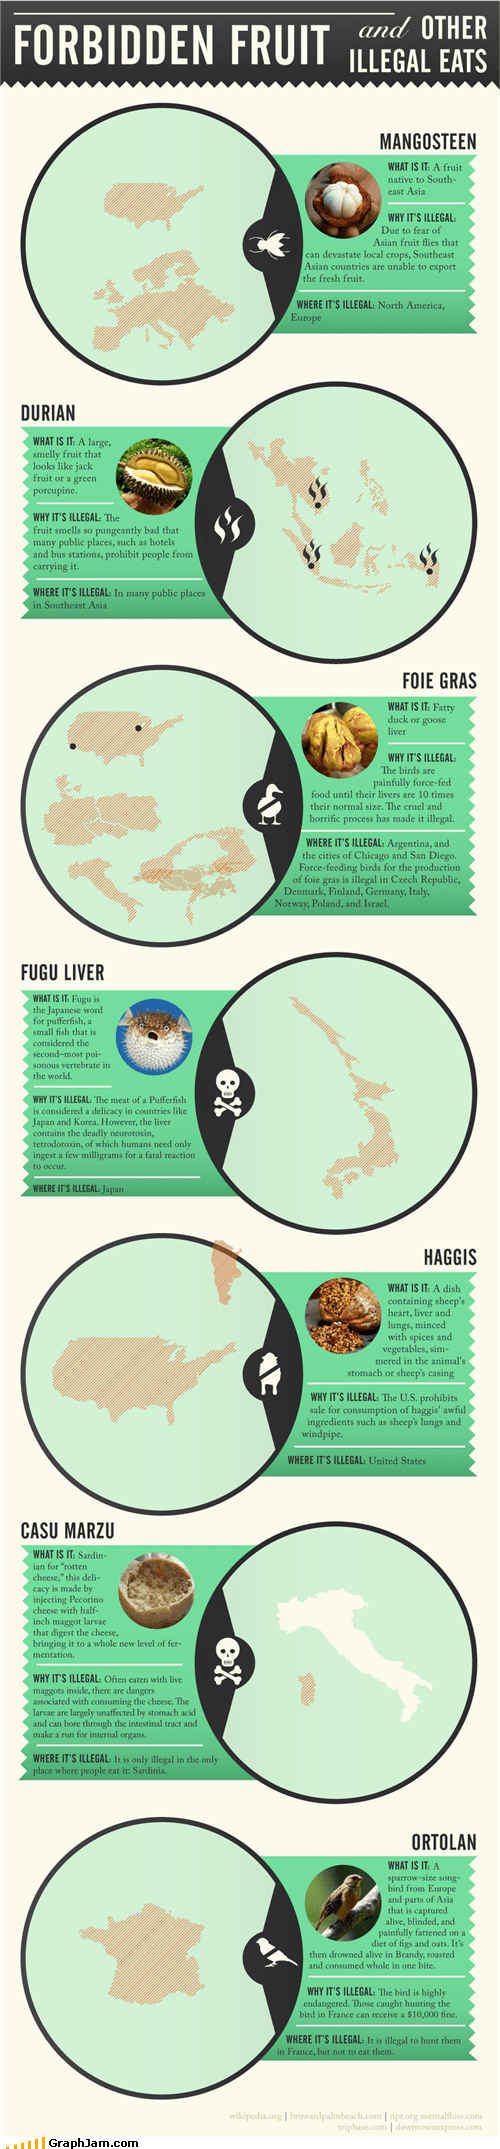 food,fruit,illegal,infographic